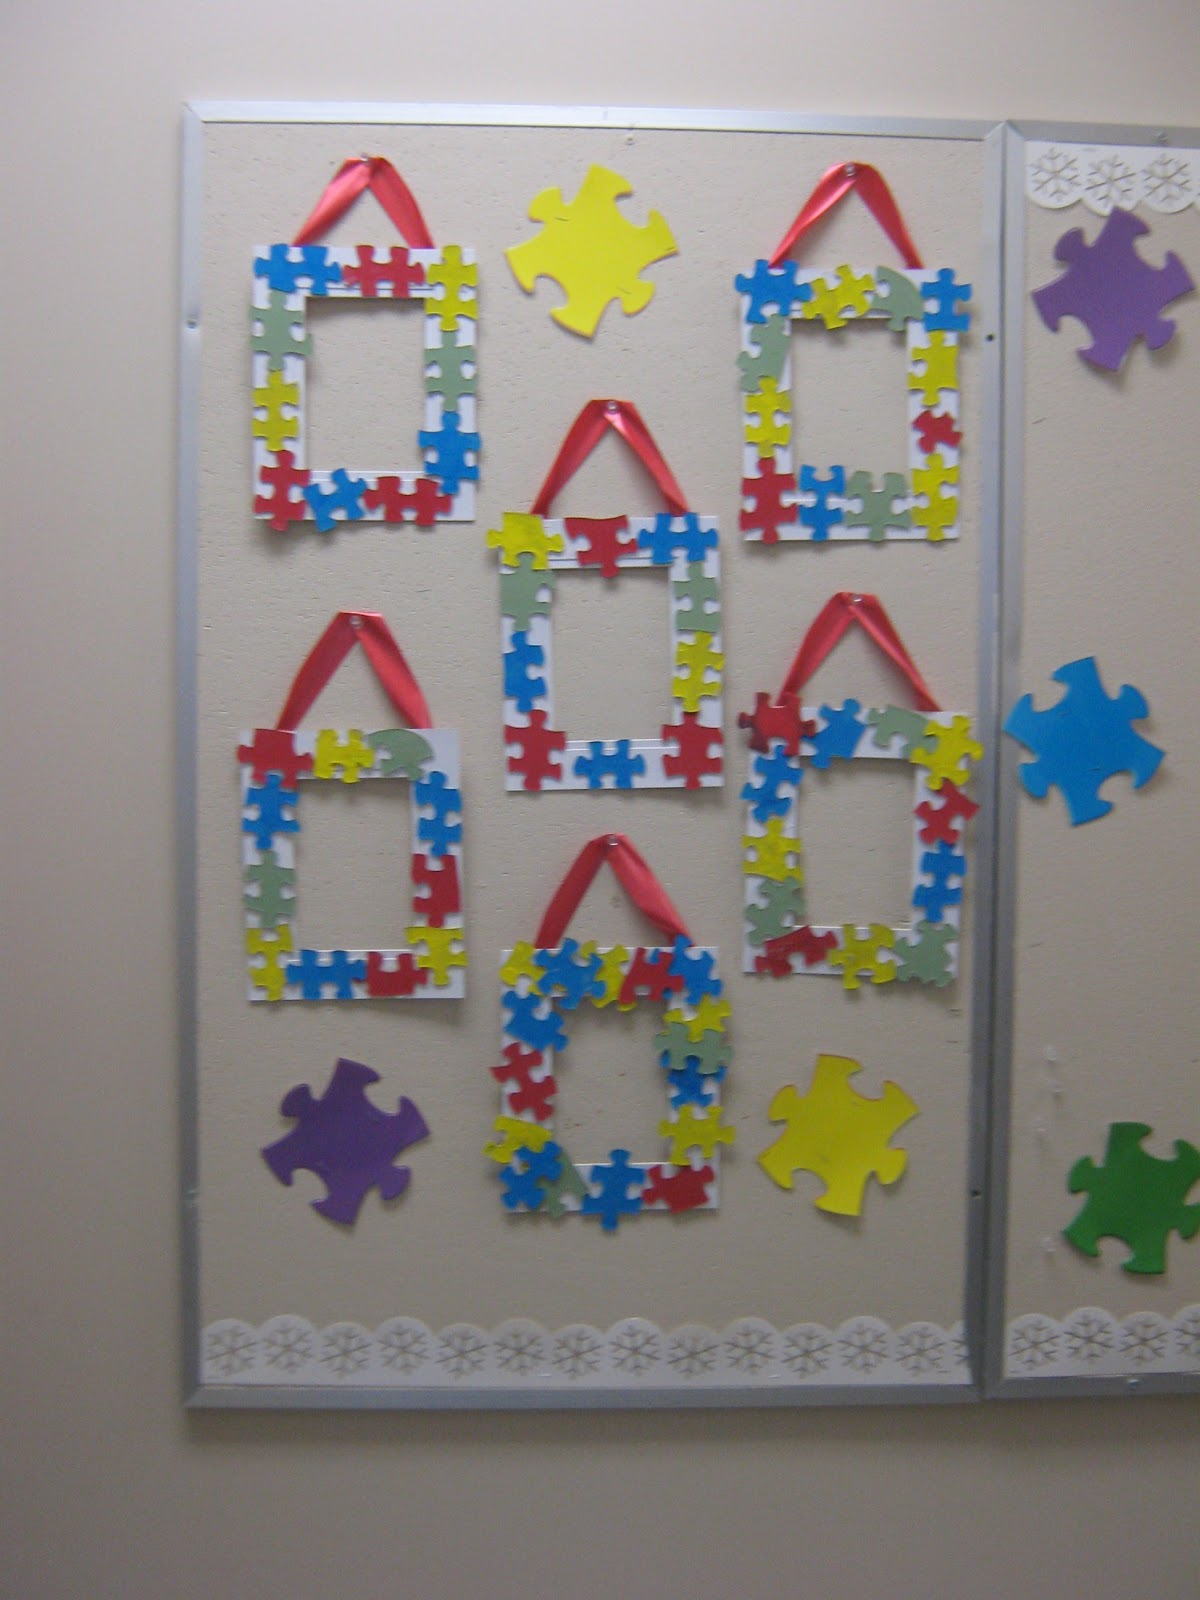 One Piece at a Time: Autism-Themed Frames